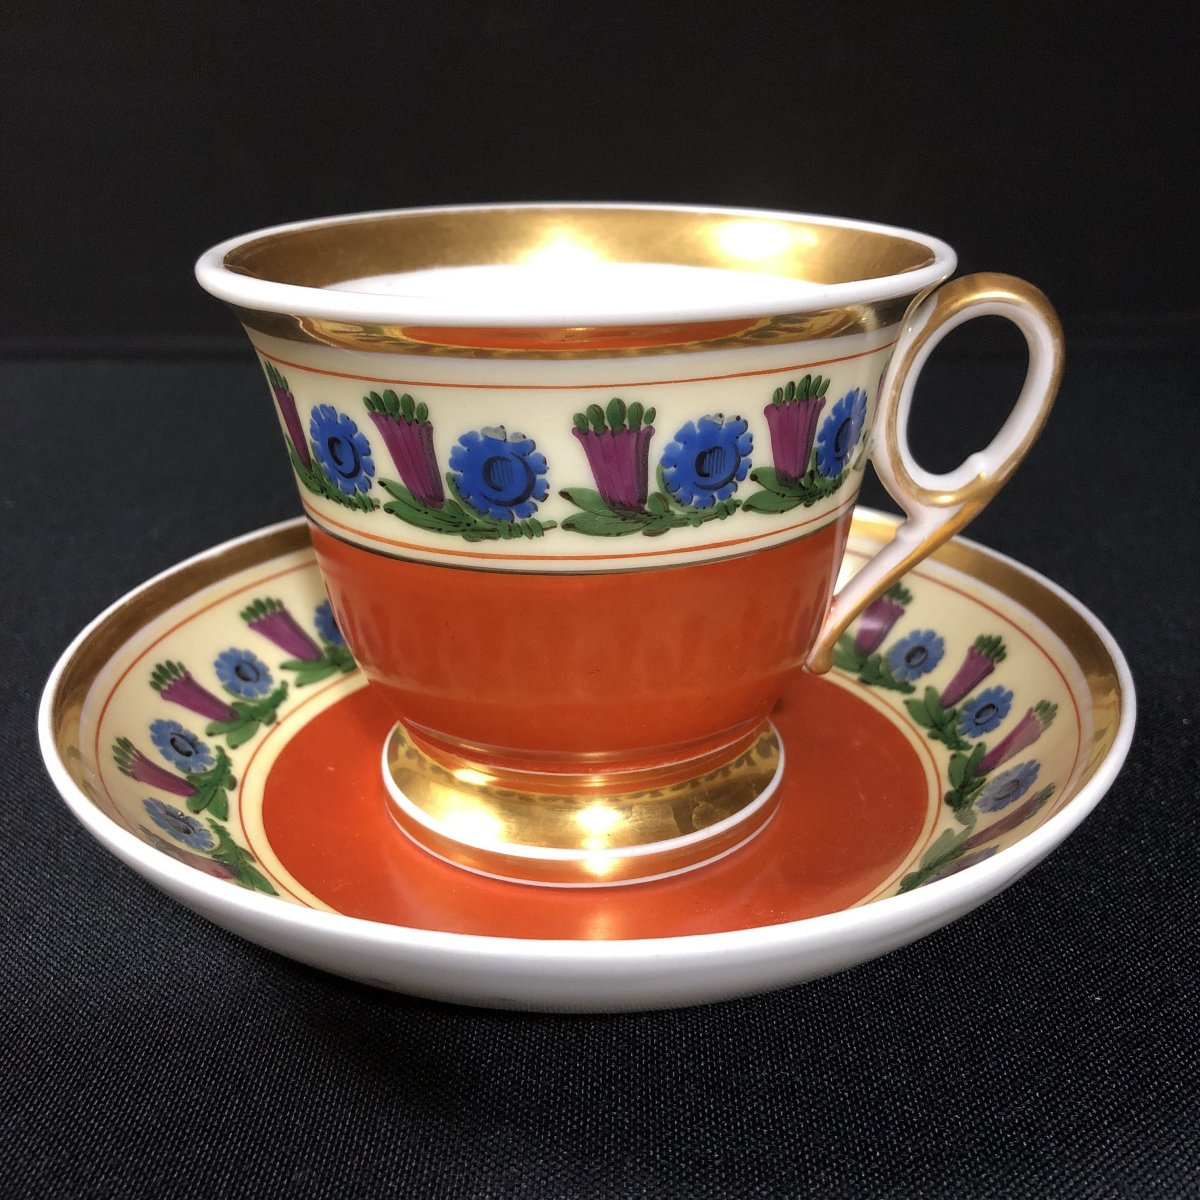 Chocolate Cup And Saucer In Paris Porcelain-photo-1